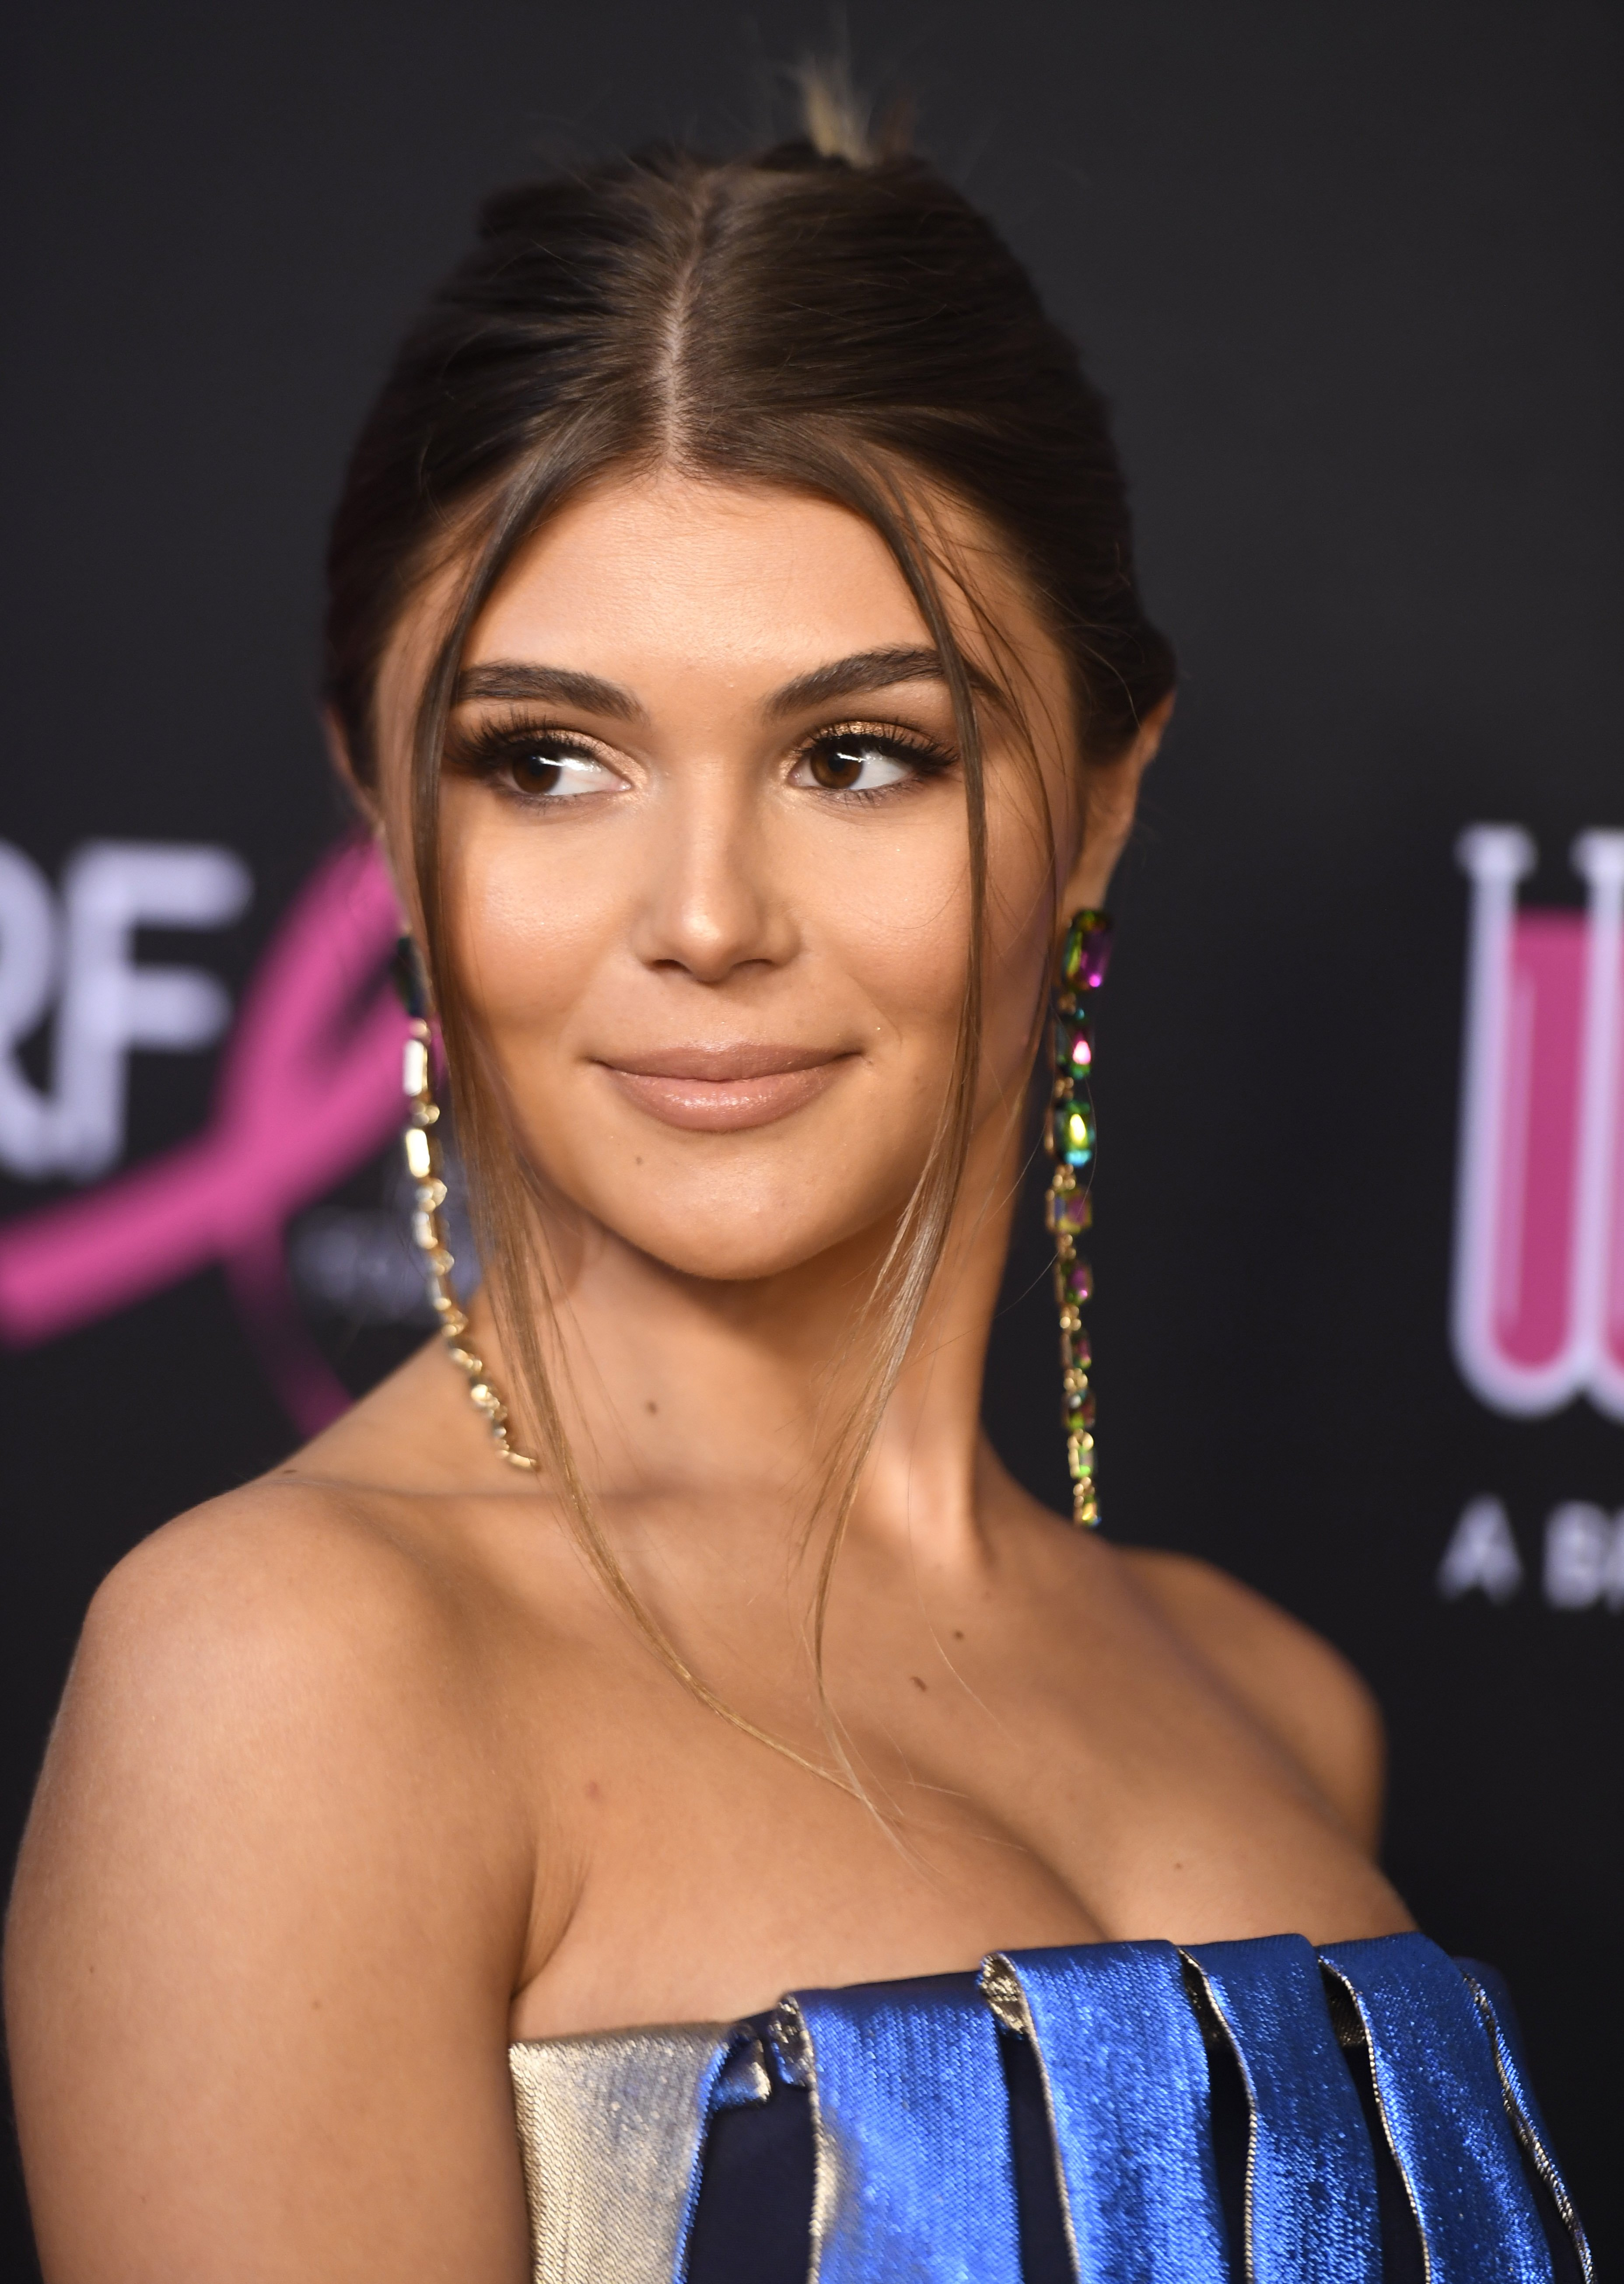 Olivia Jade Giannulli at the Women's Cancer Research Fund benefit gala in Beverly Hills, February, 2019. | Photo: Getty Images.